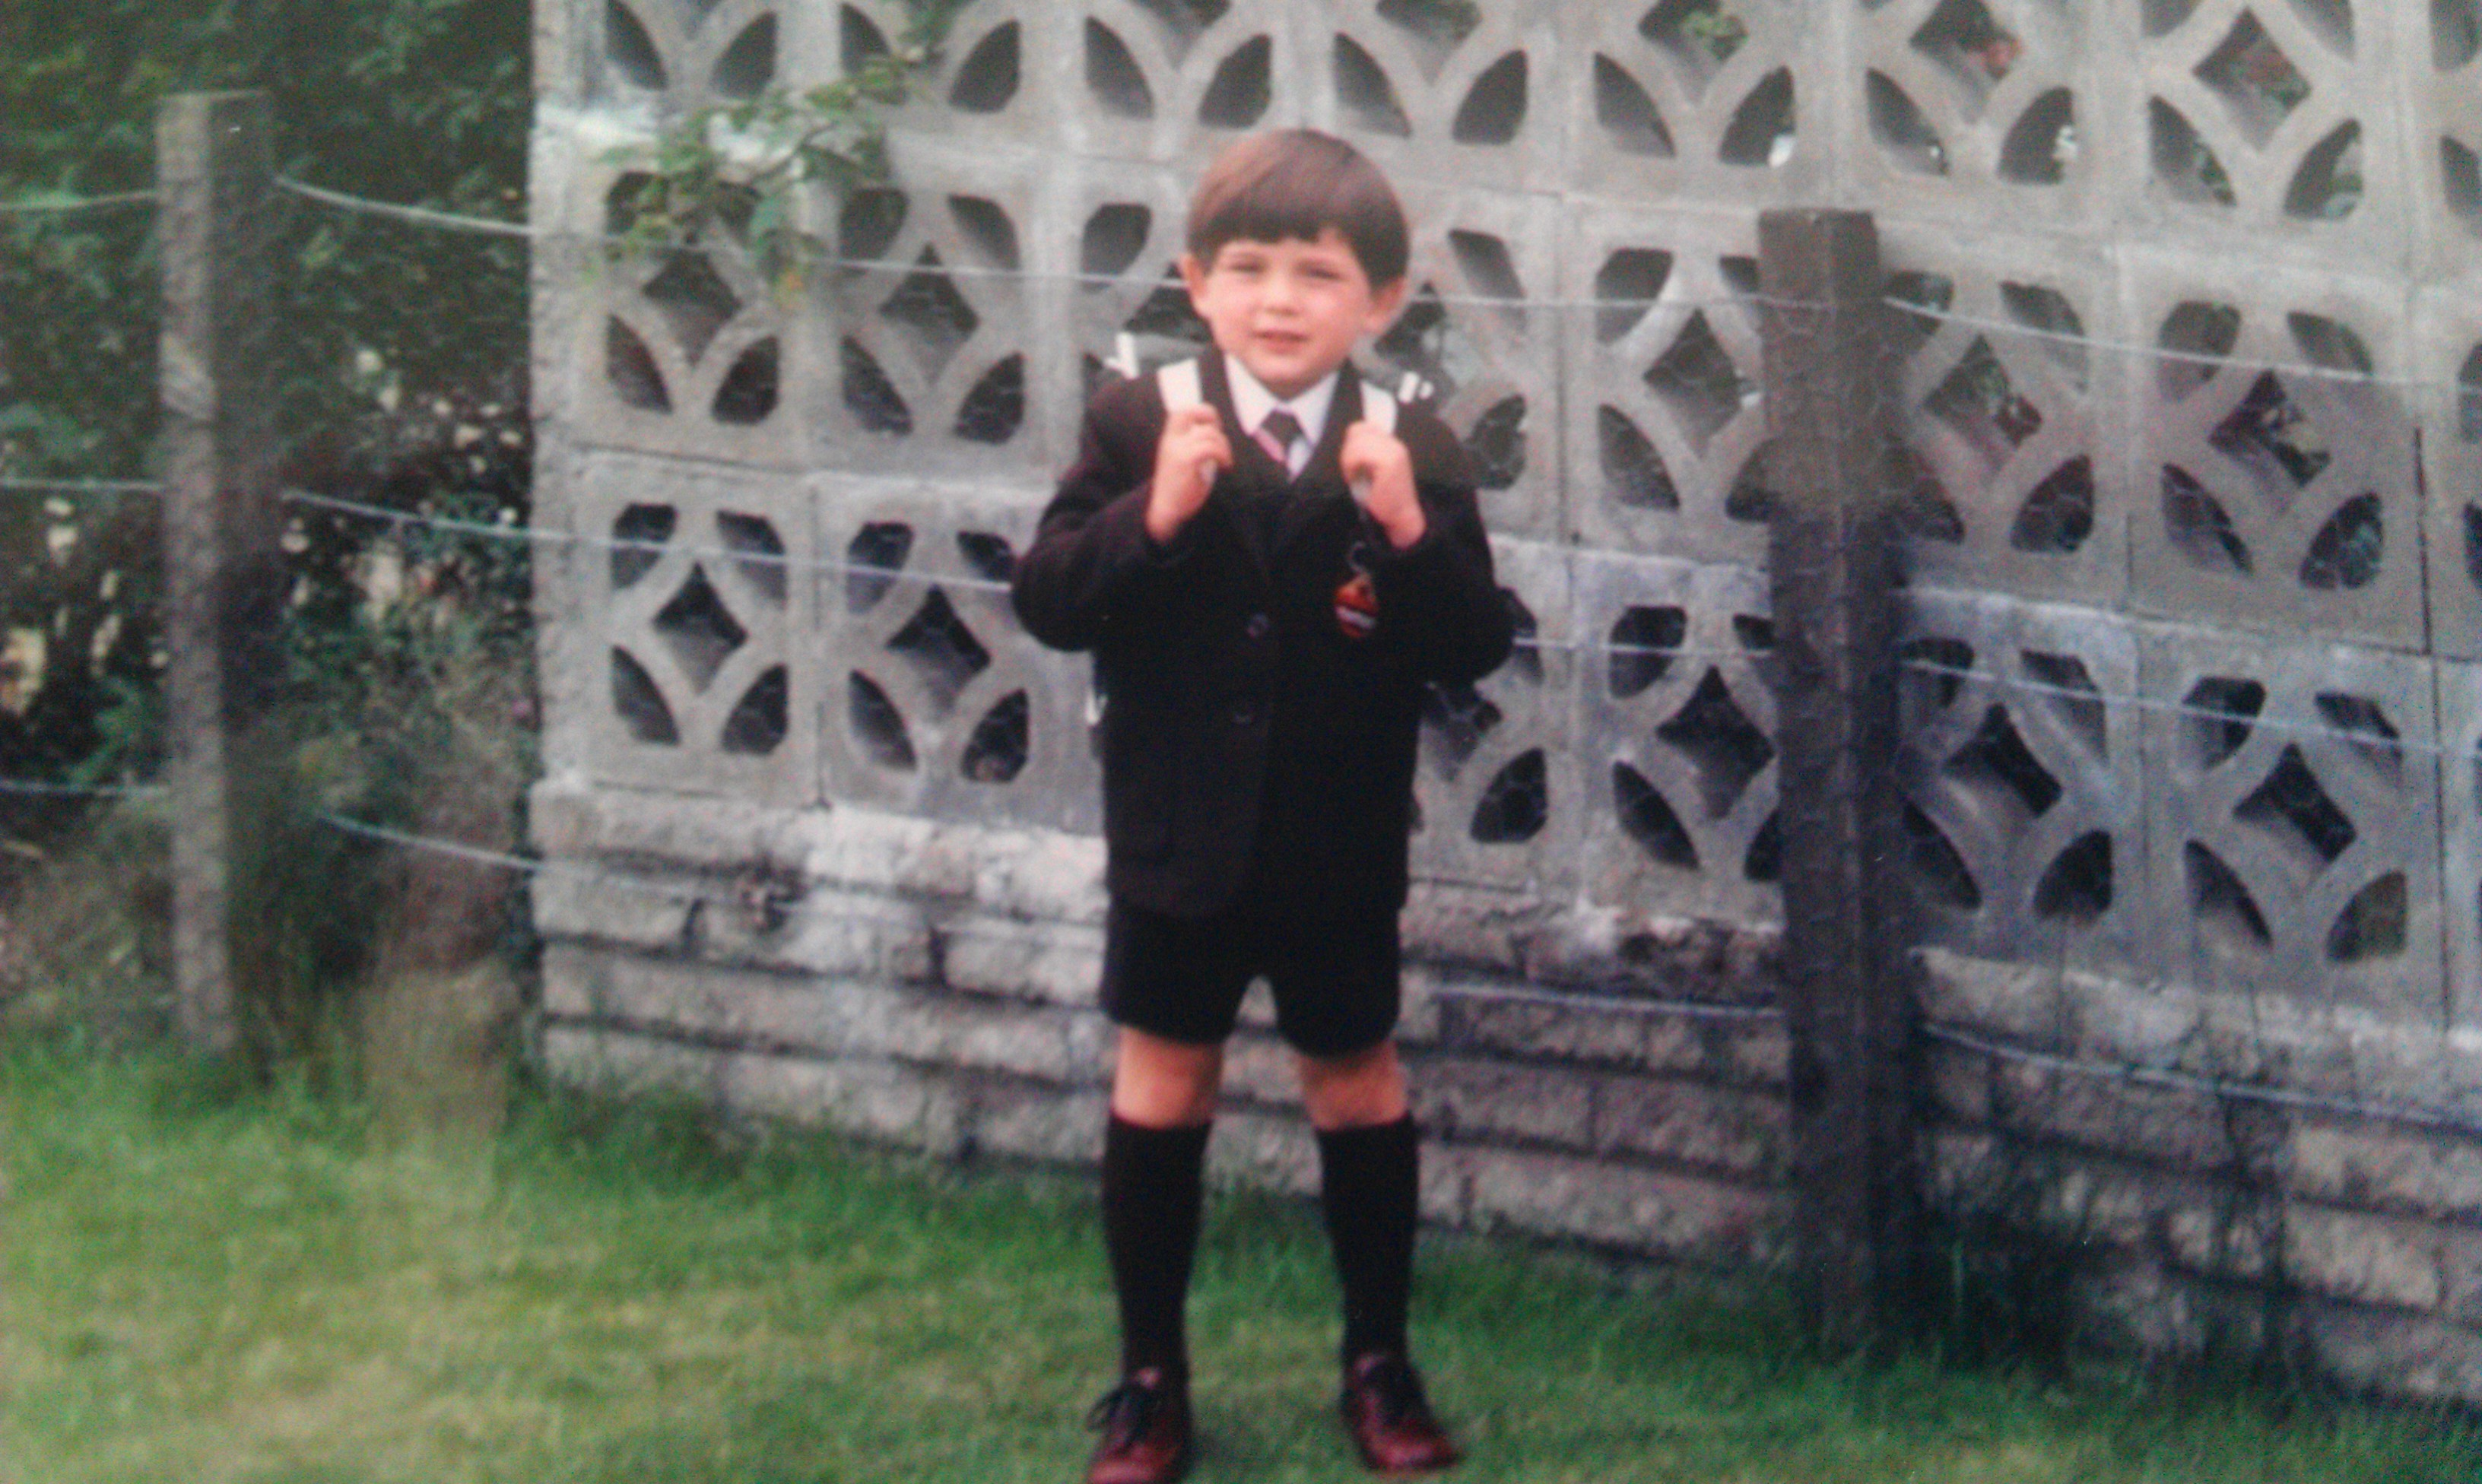 Clive,when he was a whole lot younger, posing on his first day of school in Clydebank, Scotland.